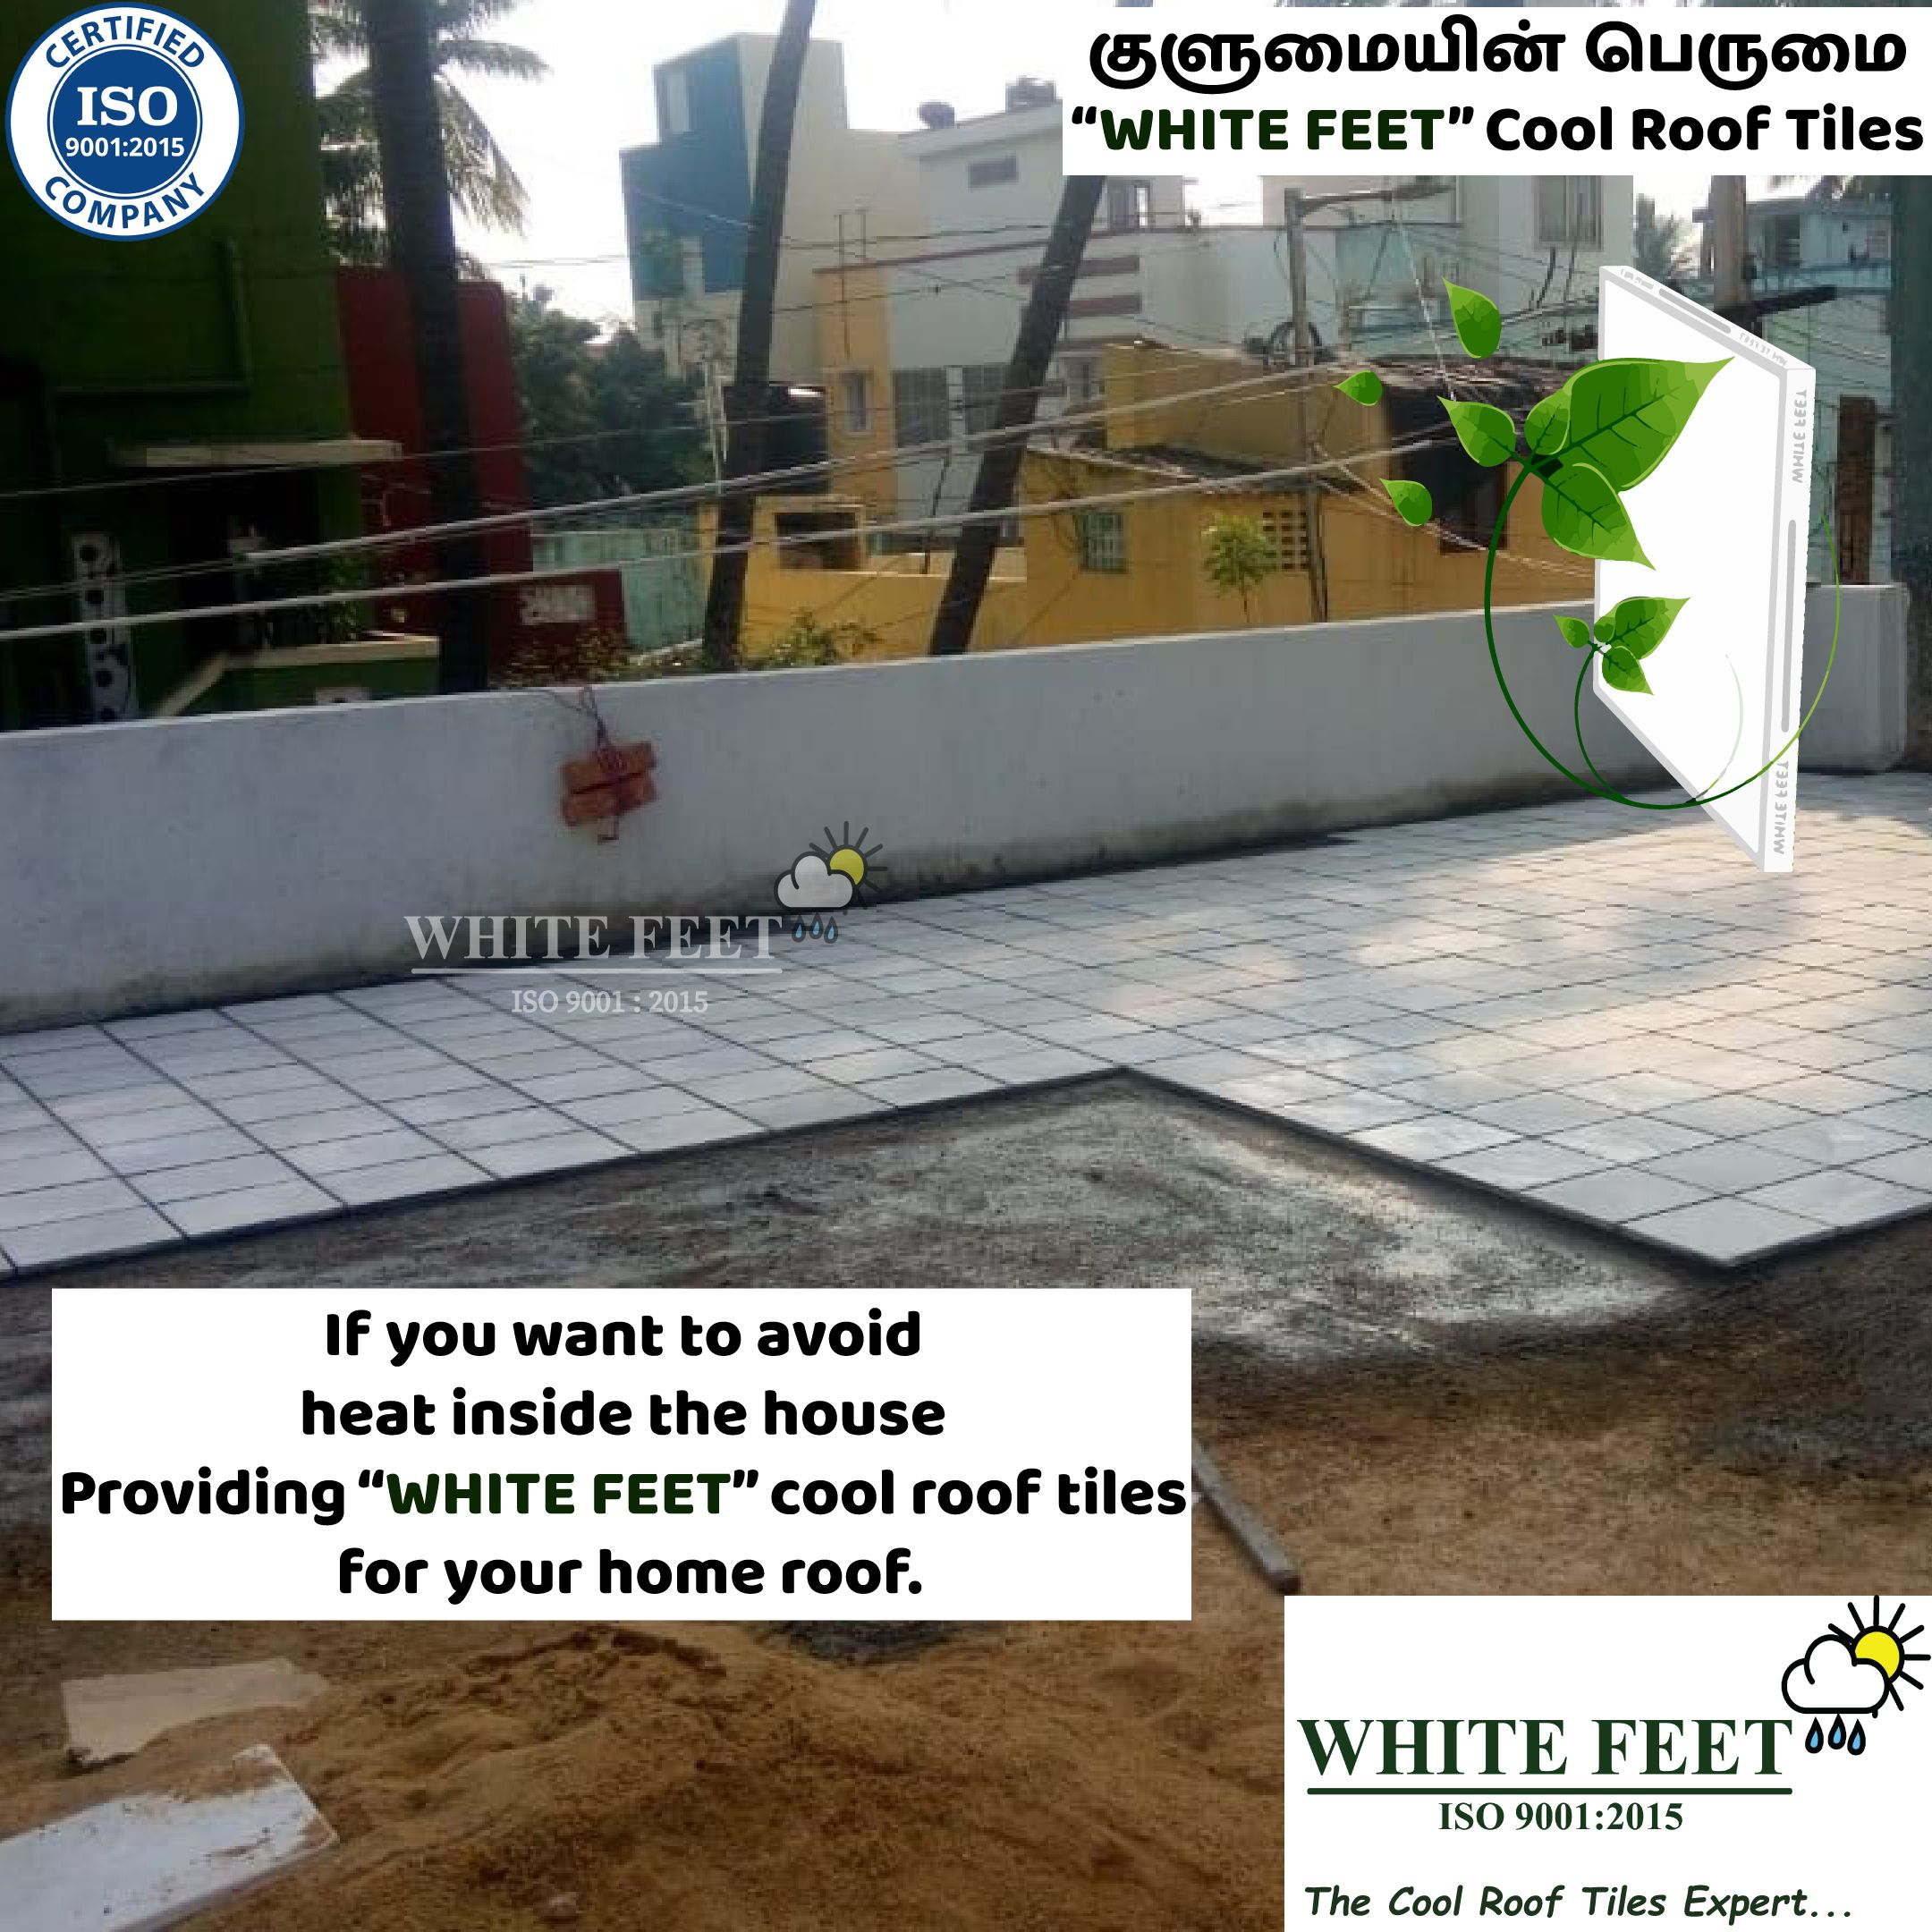 White Feet Cool Roof Tiles In 2020 Cool Roof Roof Tiles Roof